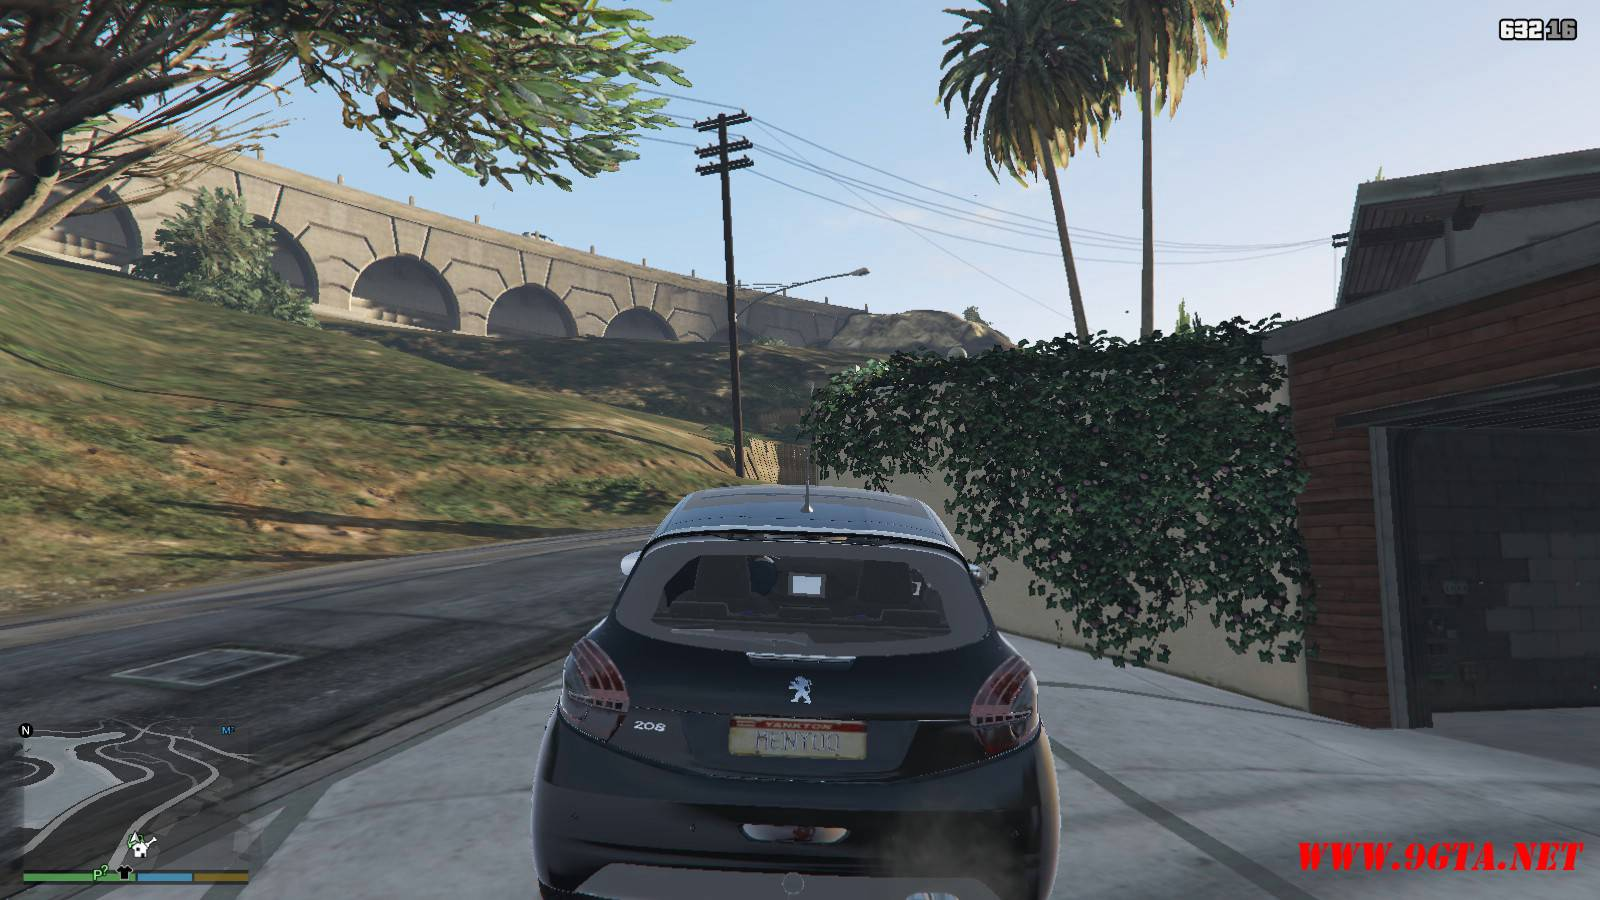 Peugeot 208 Mod For GTA5 (6)